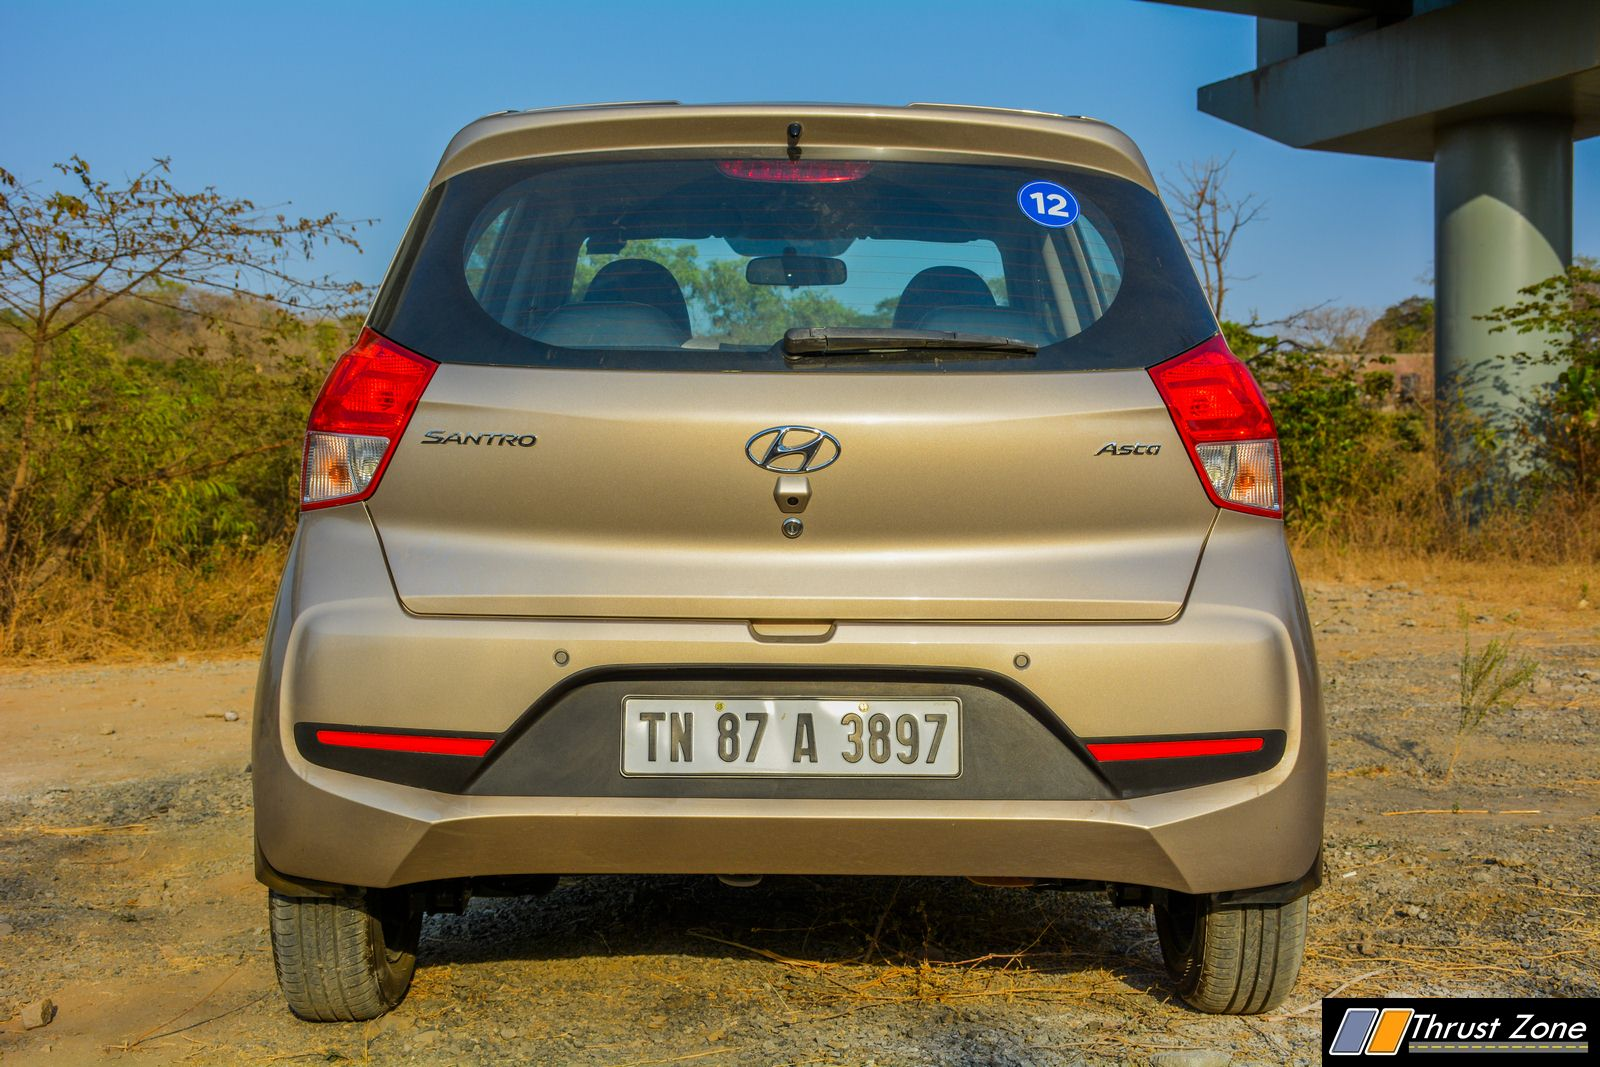 https://www.thrustzone.com/wp-content/uploads/2019/04/2019-Hyundai-Santro-petrol-manual-review-18.jpg